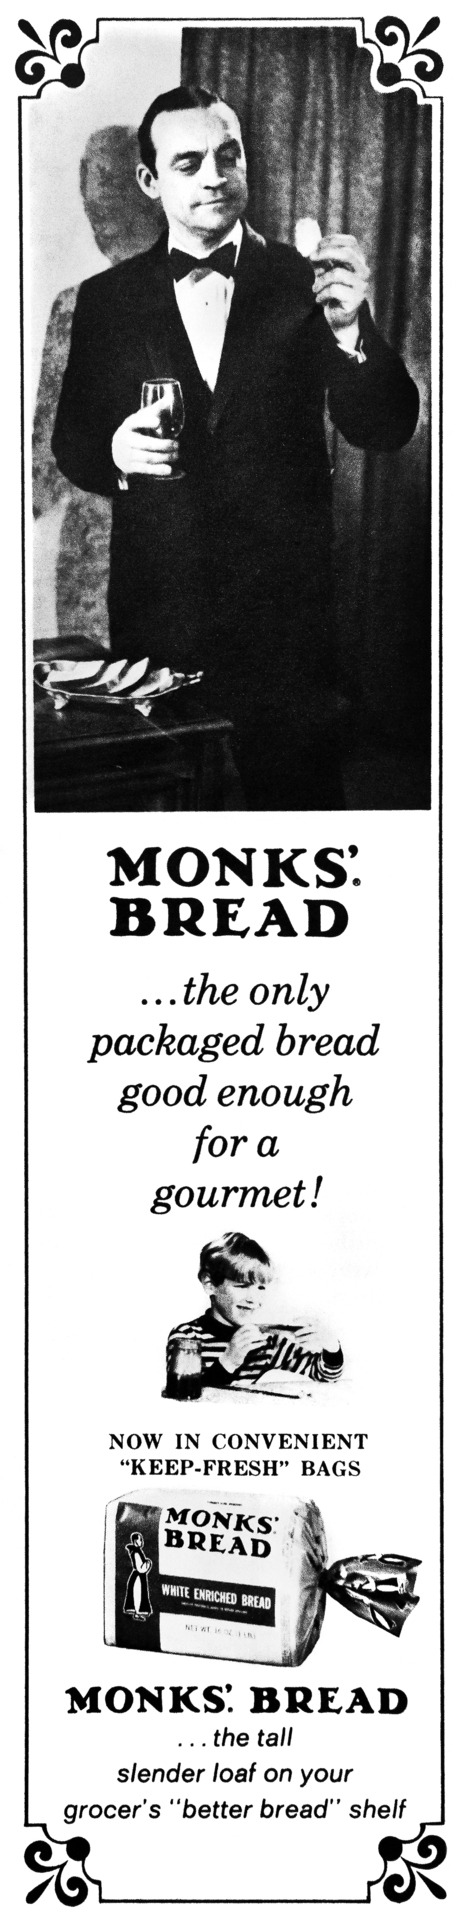 Monks' Bread Advertisement - Gourmet: March 1970